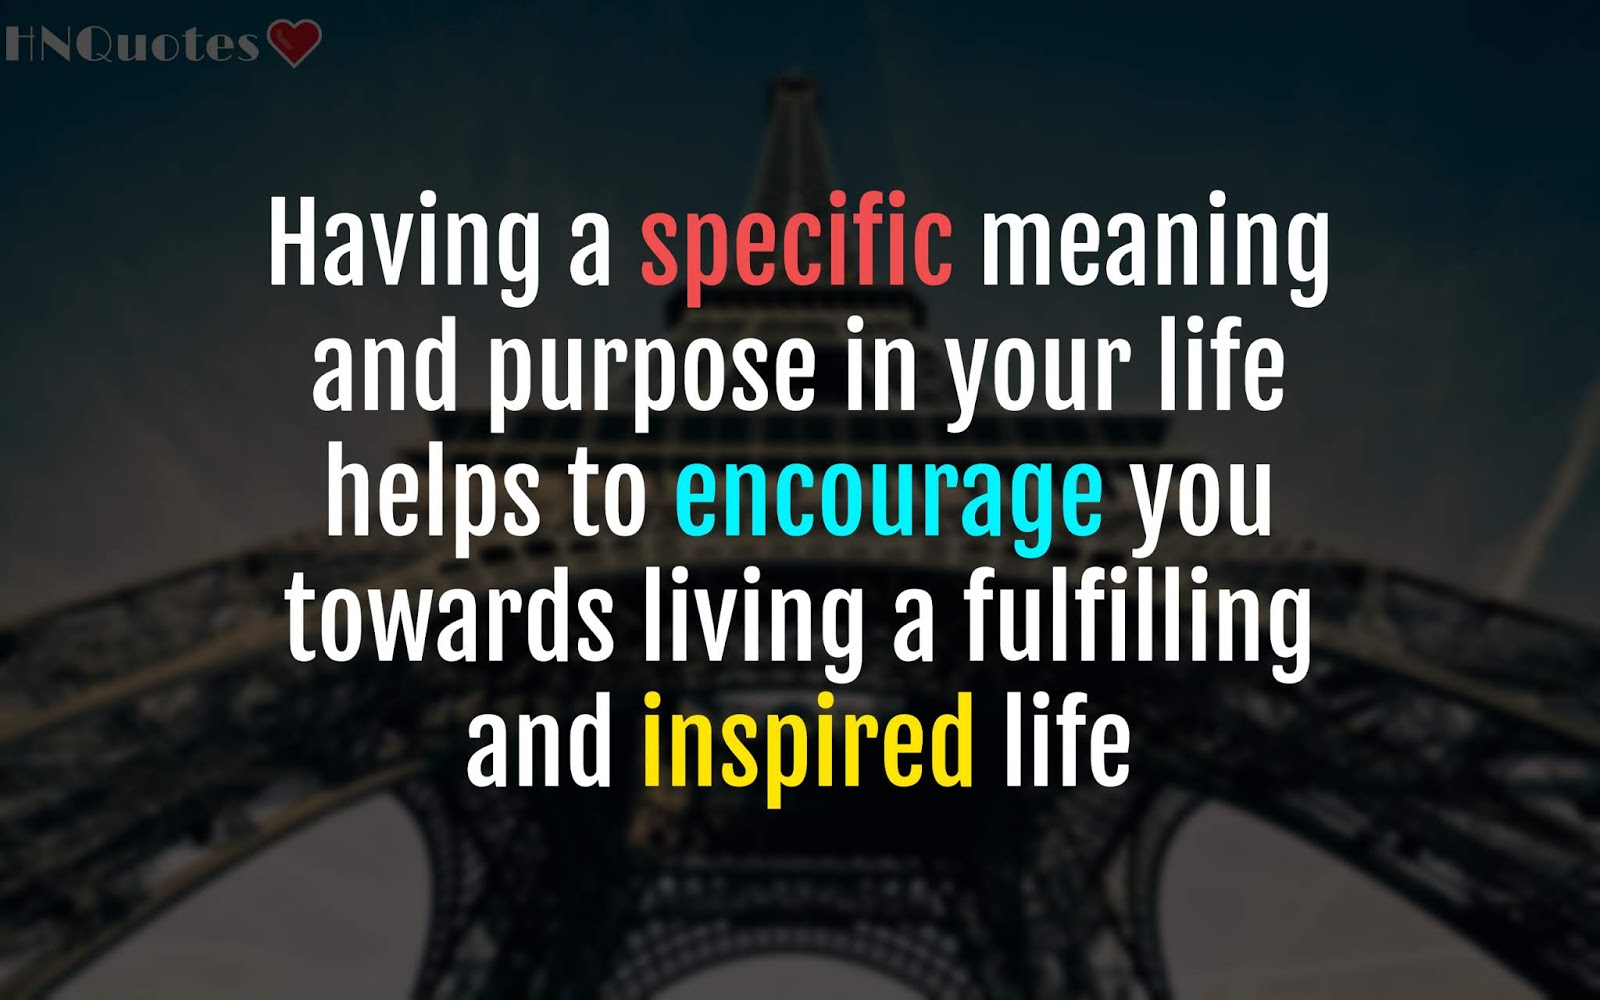 Inspirational-Quotes-On-Everyday-Life-Motivational-Sayings-102-Beautiful-HNQuotes